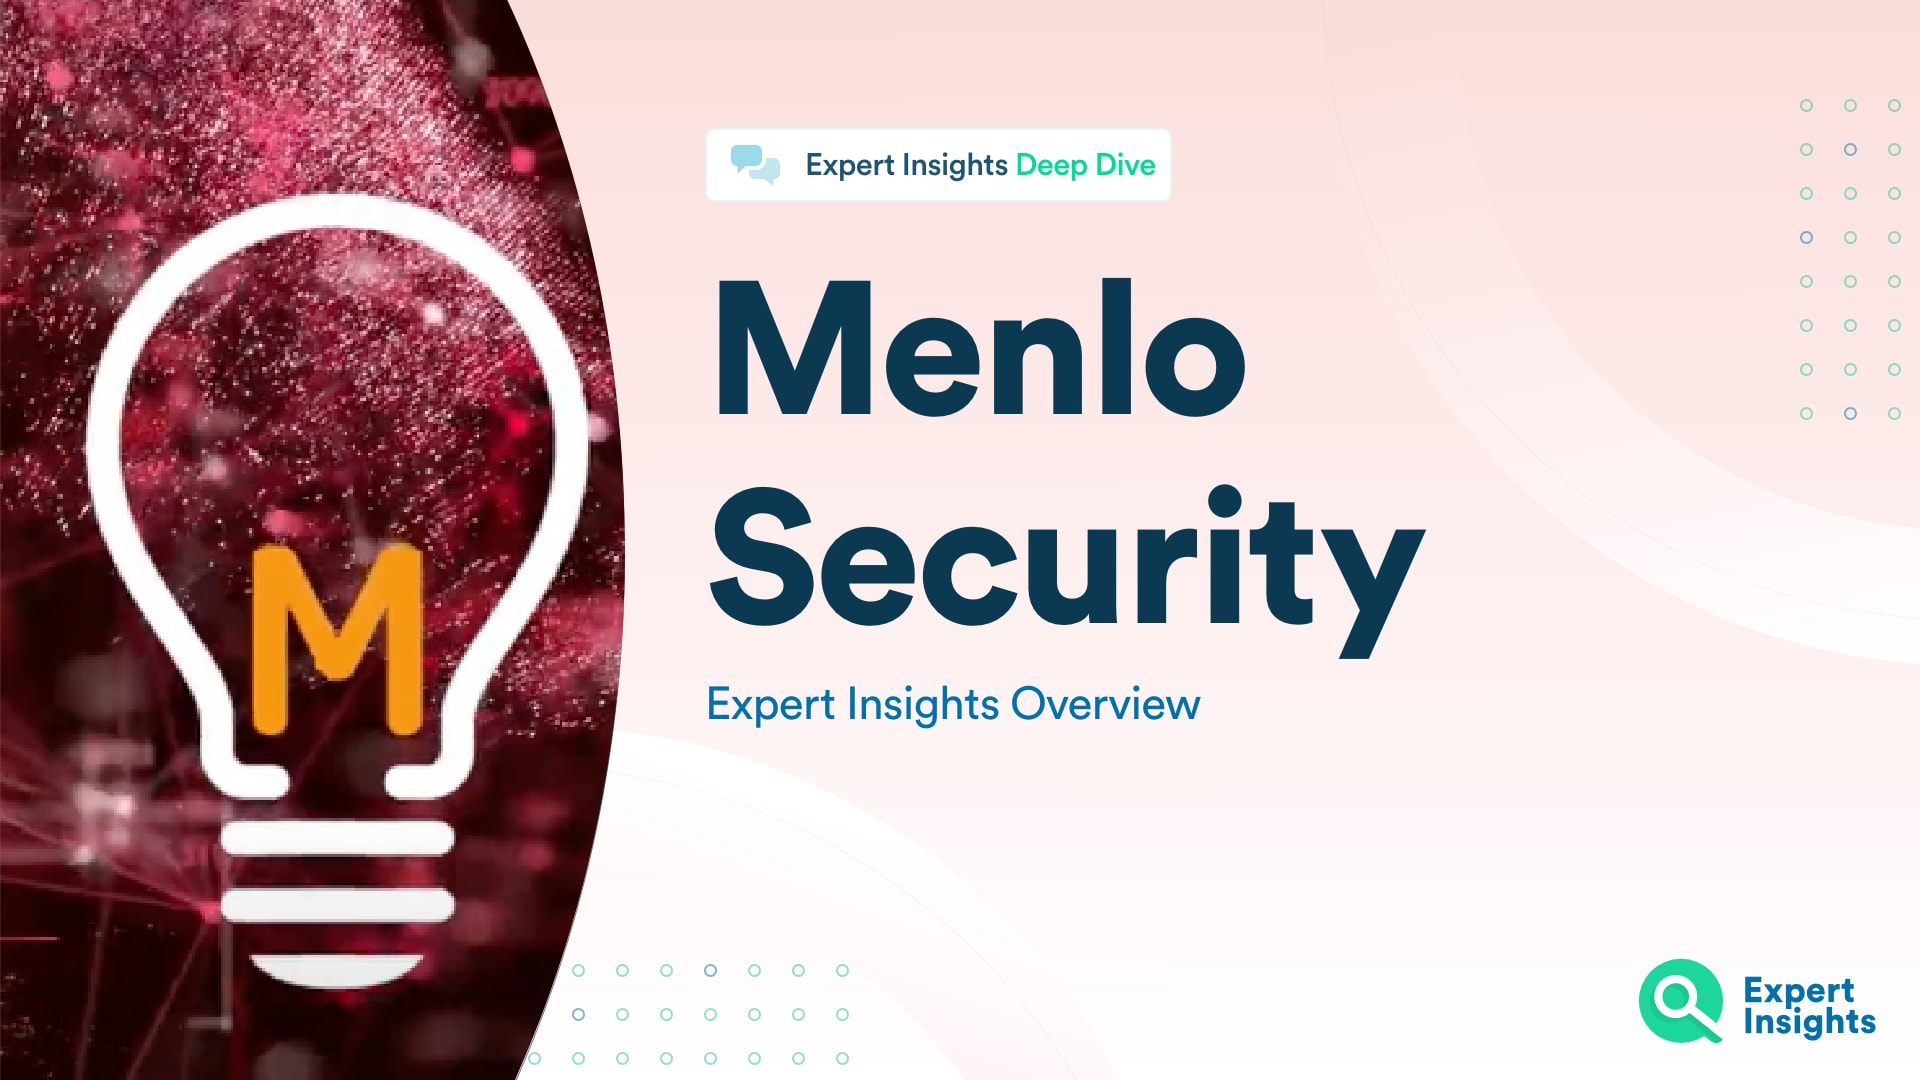 Menlo Security Overview